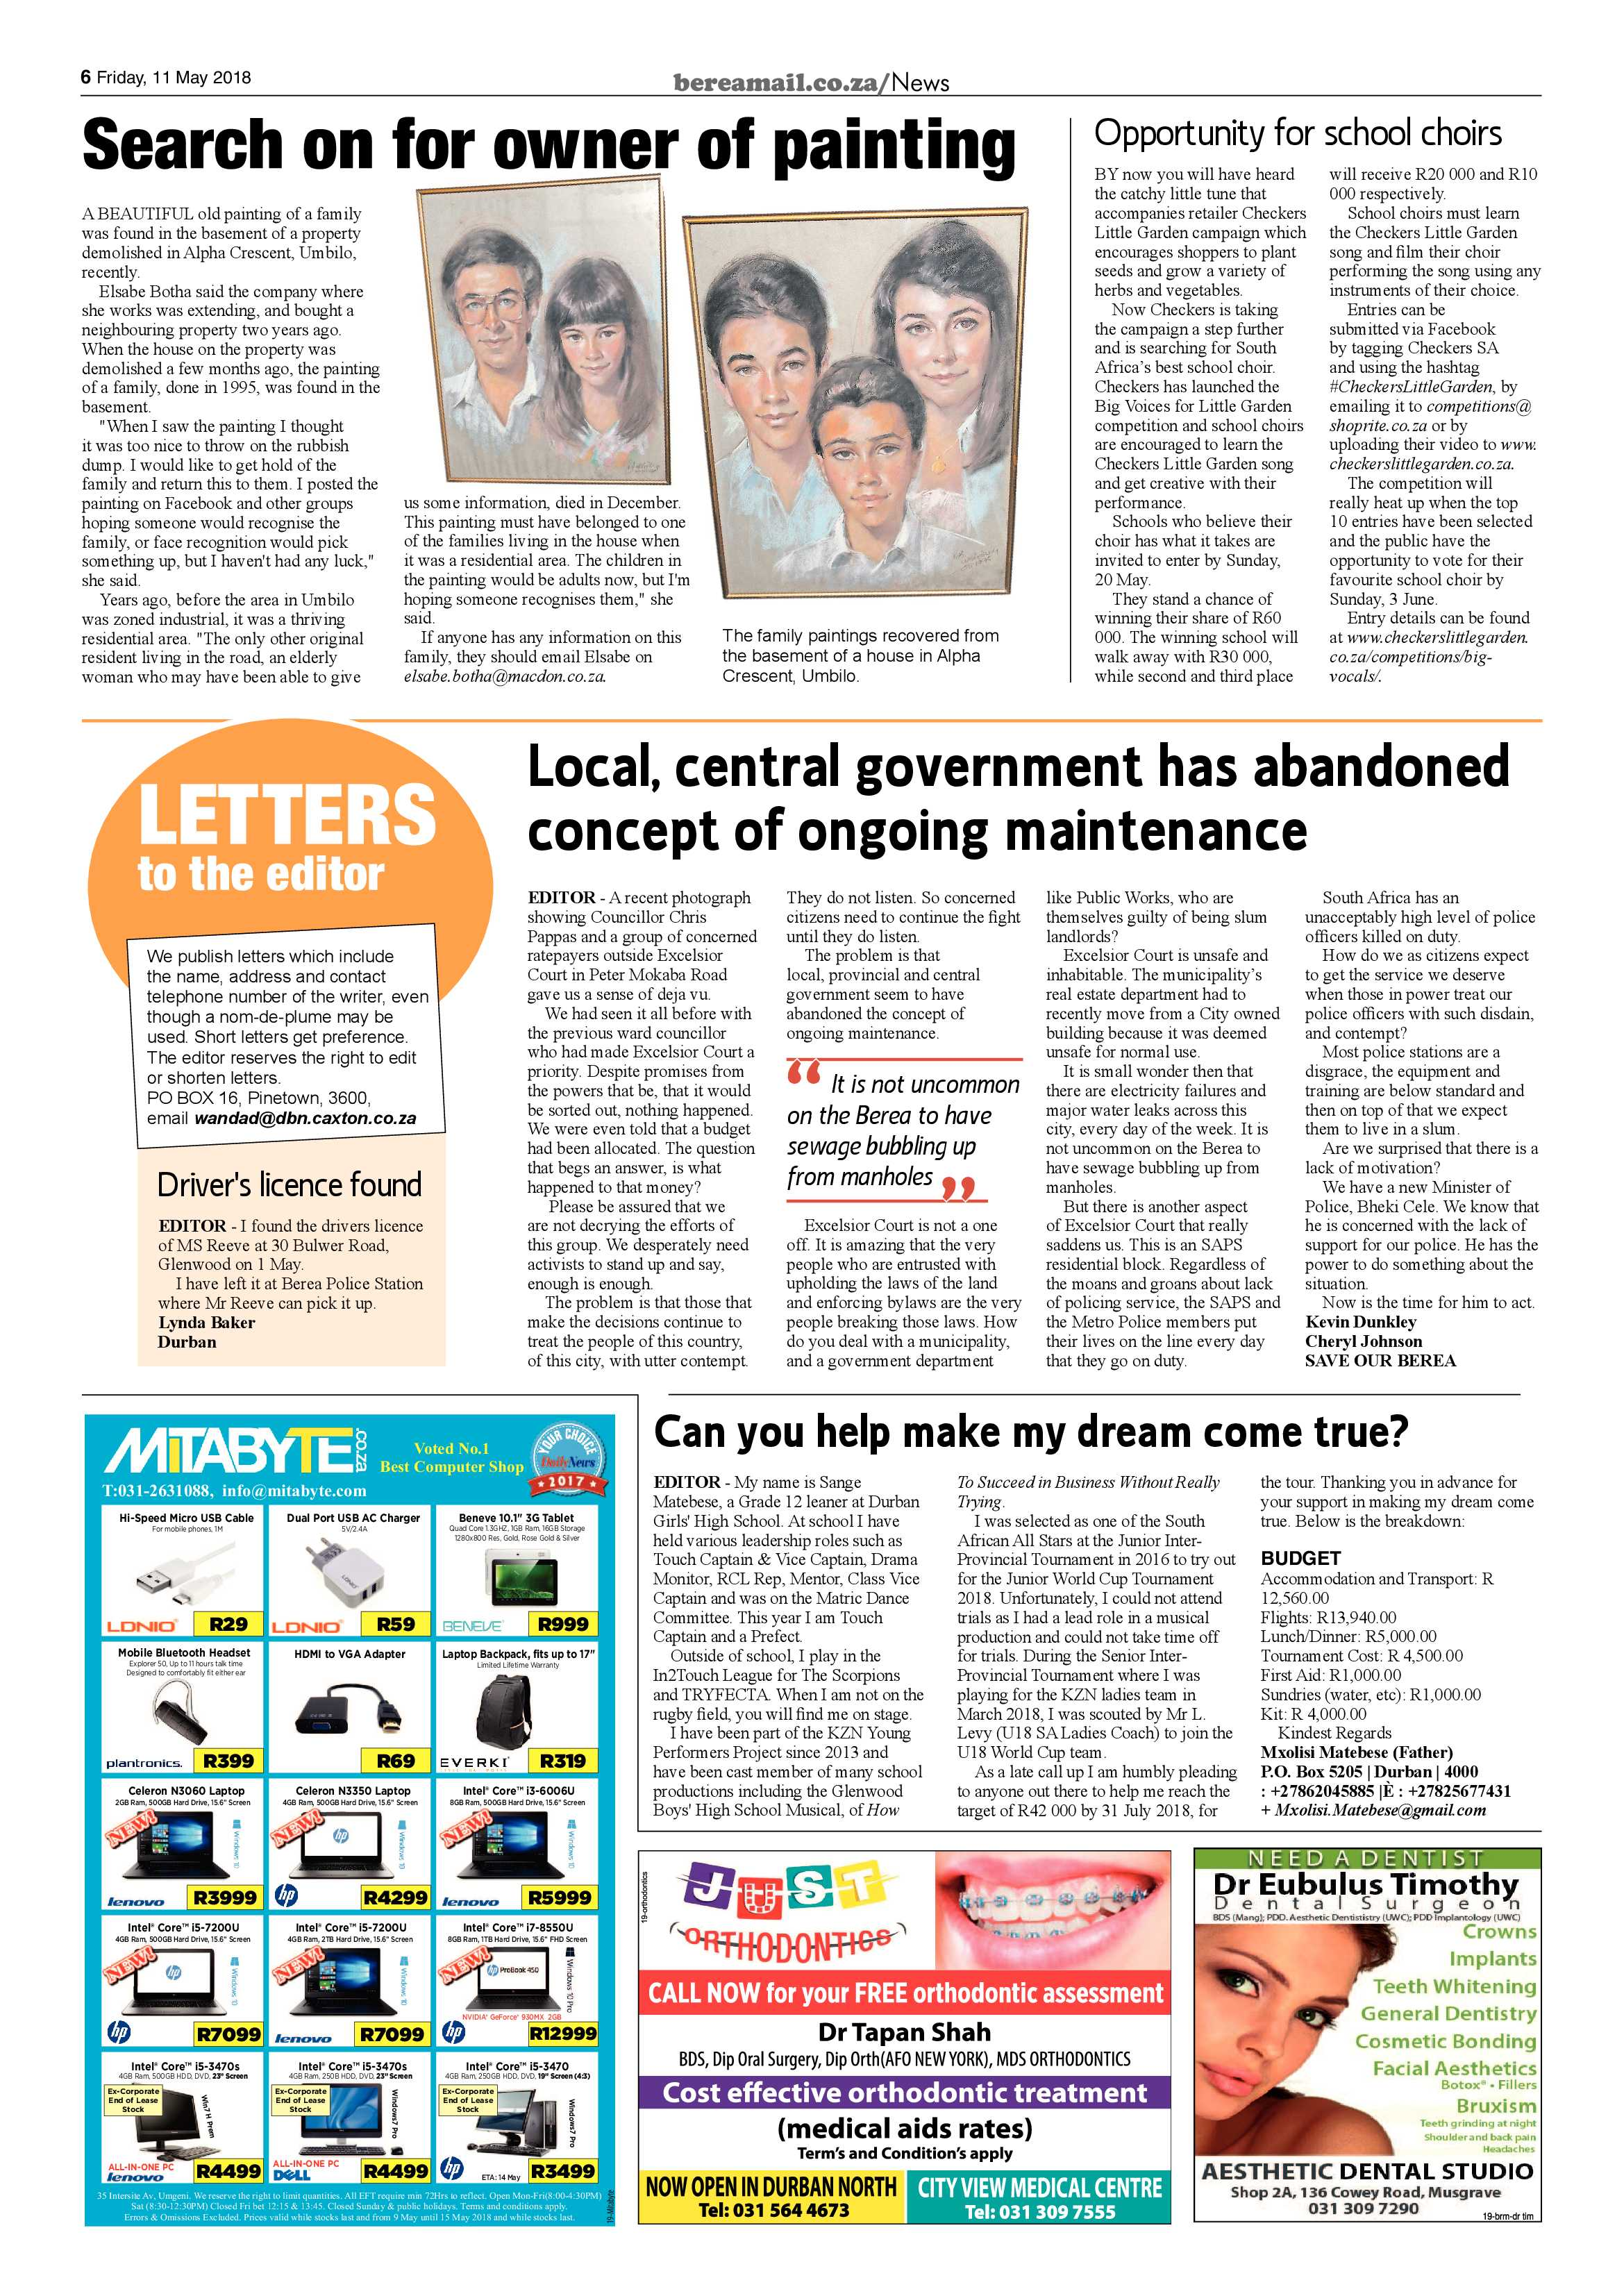 berea-mail-11-may-2018-epapers-page-6